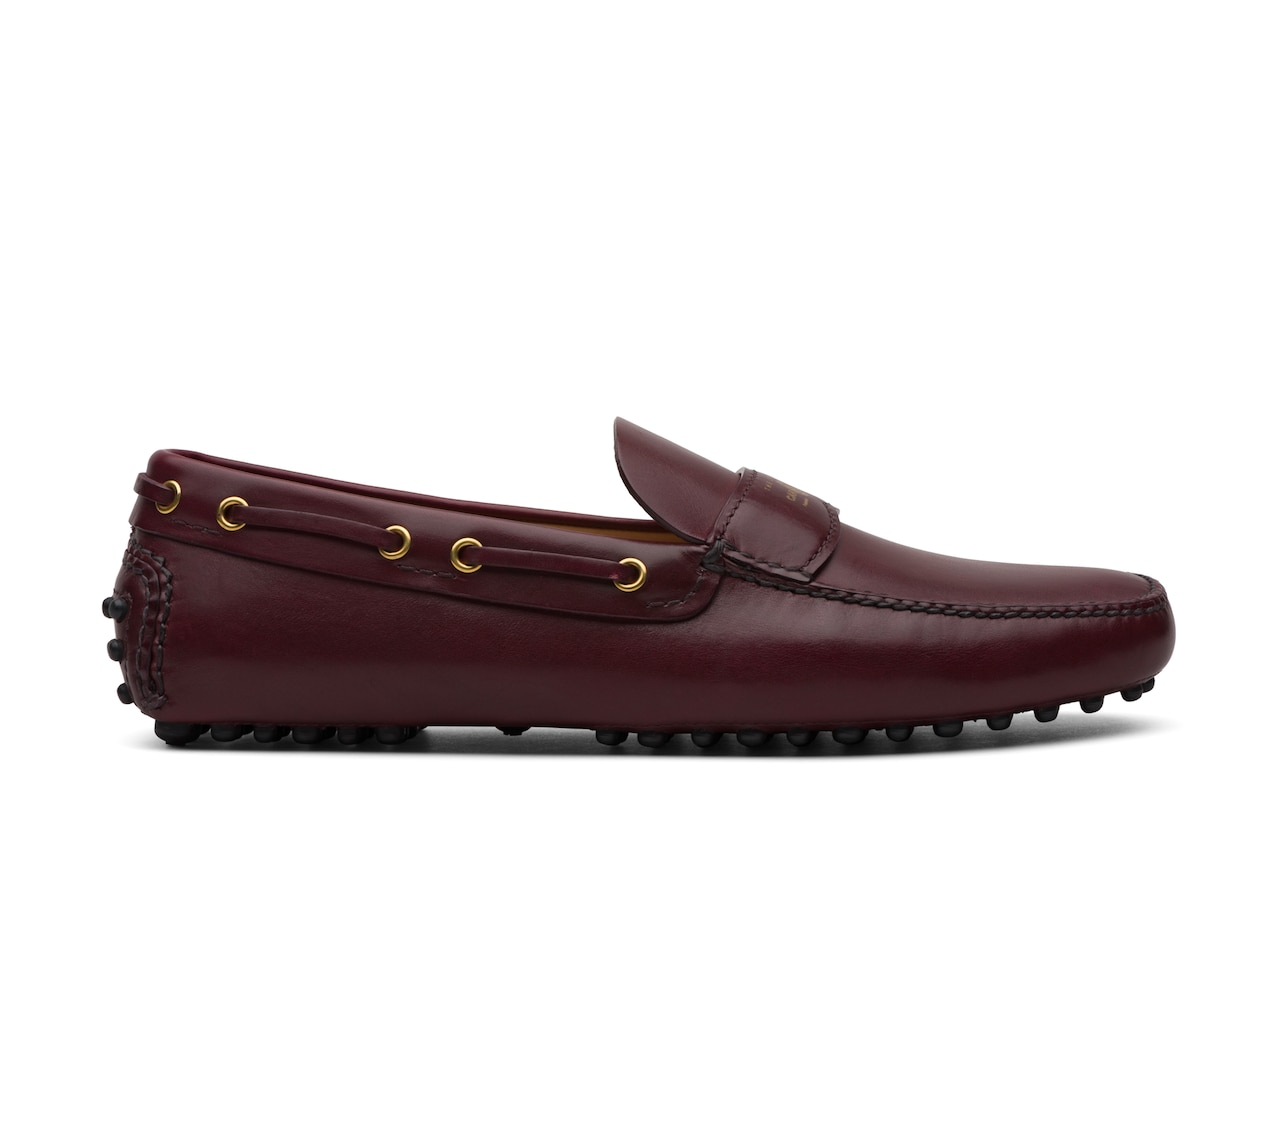 DRIVING SHOES SOFT CALF BORDEAUX